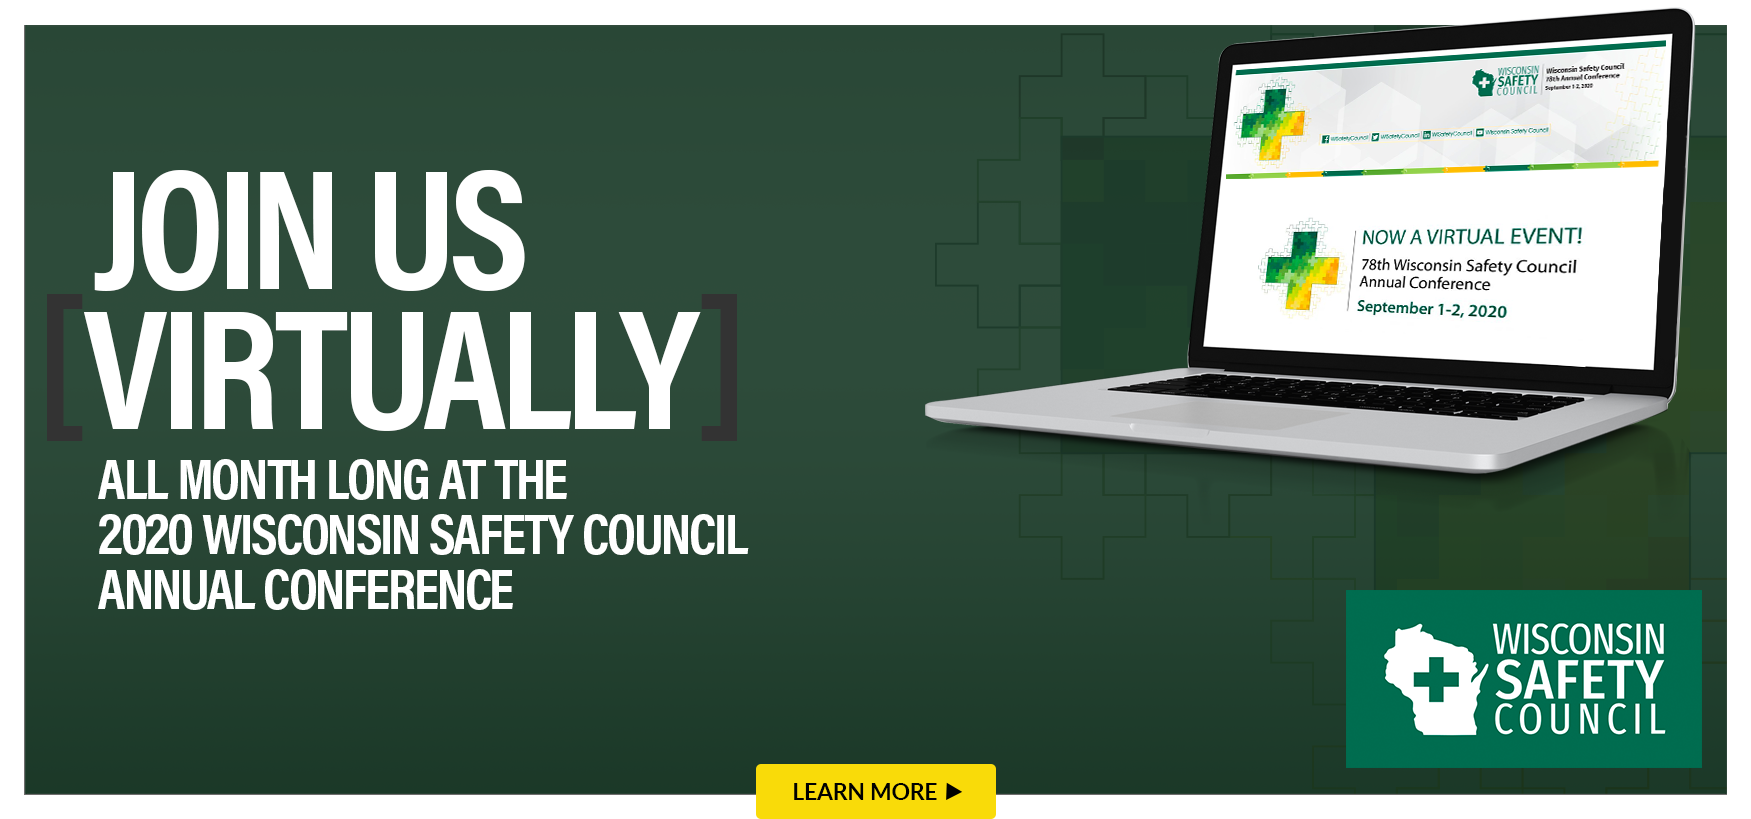 Join Us at the Wisconsin Safety Council Annual Conference Virtually